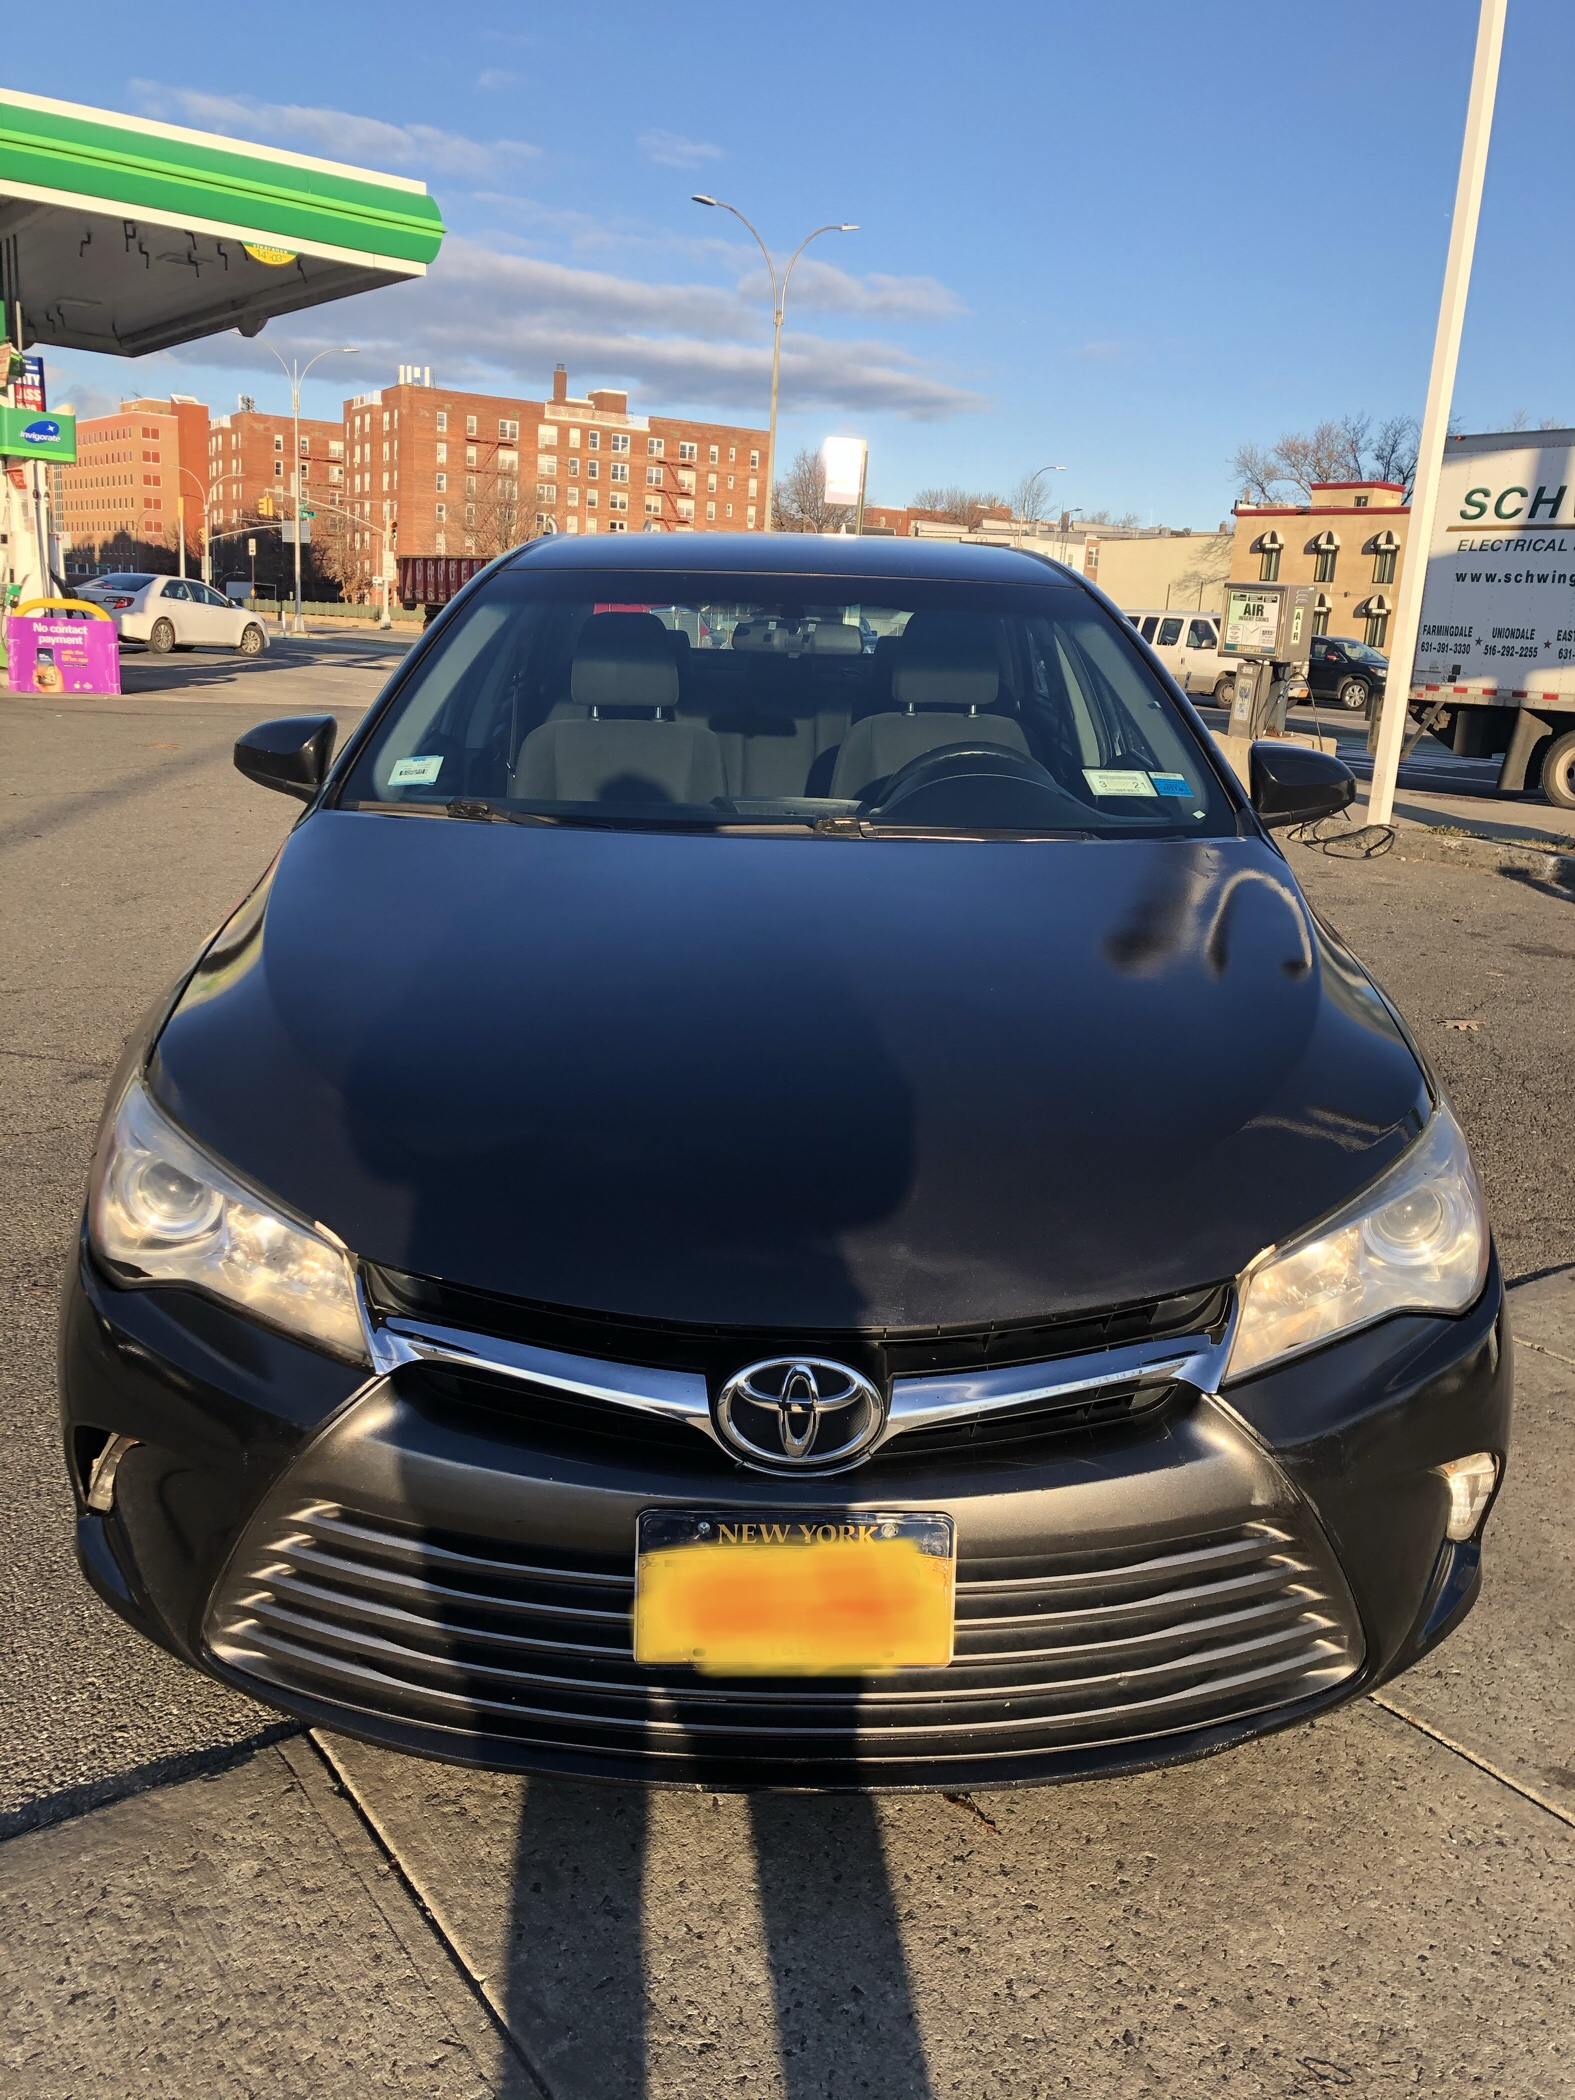 2015 Camry for rent uber and lyft